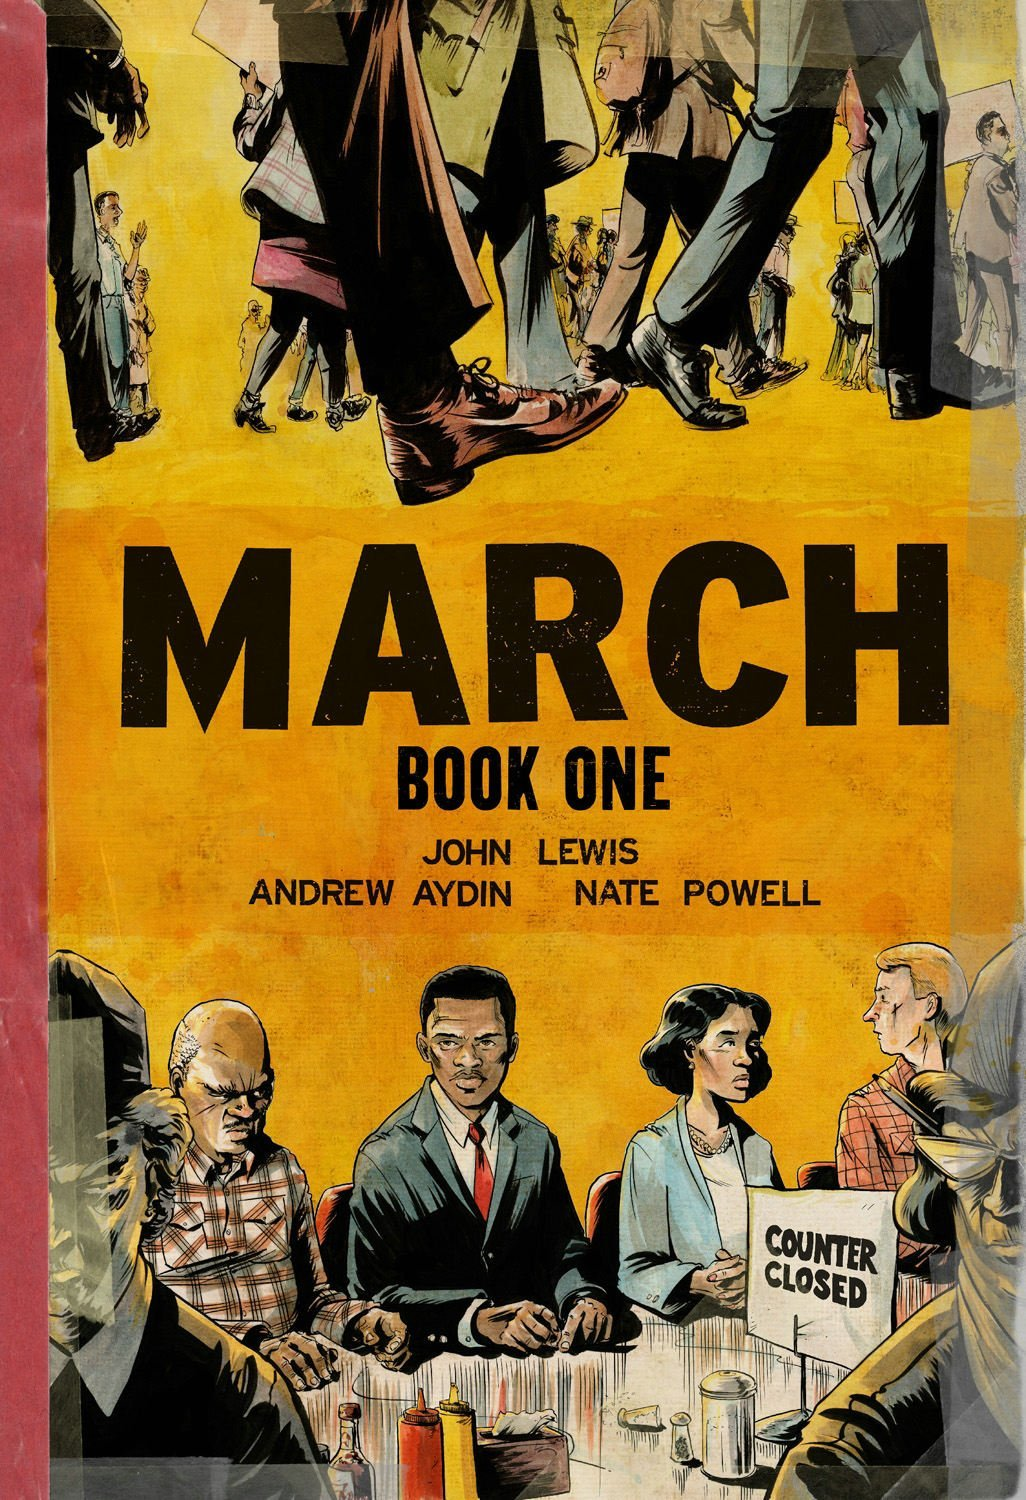 Congressman John Lewis signing MARCH Book One with Andrew Aydin and Nate Powell @ Midtown Comics Downtown | New York | New York | United States